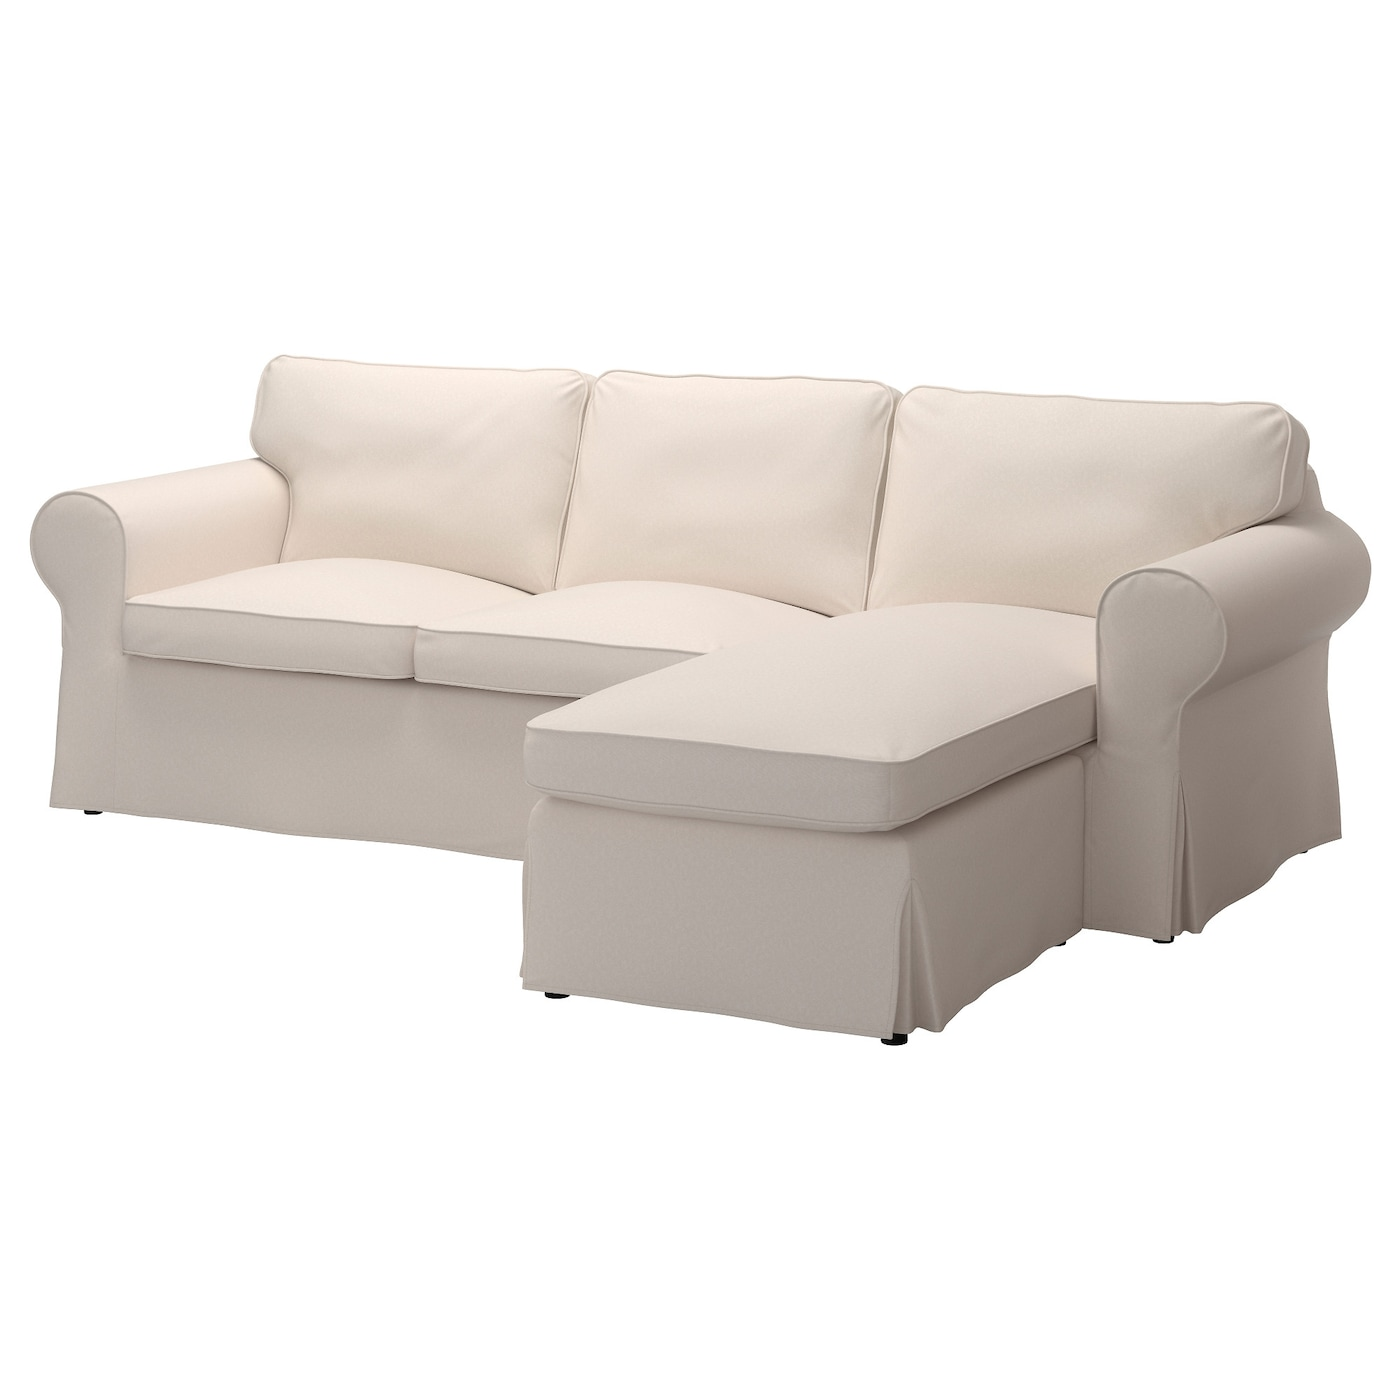 Ektorp two seat sofa and chaise longue lofallet beige ikea for Divan and settee